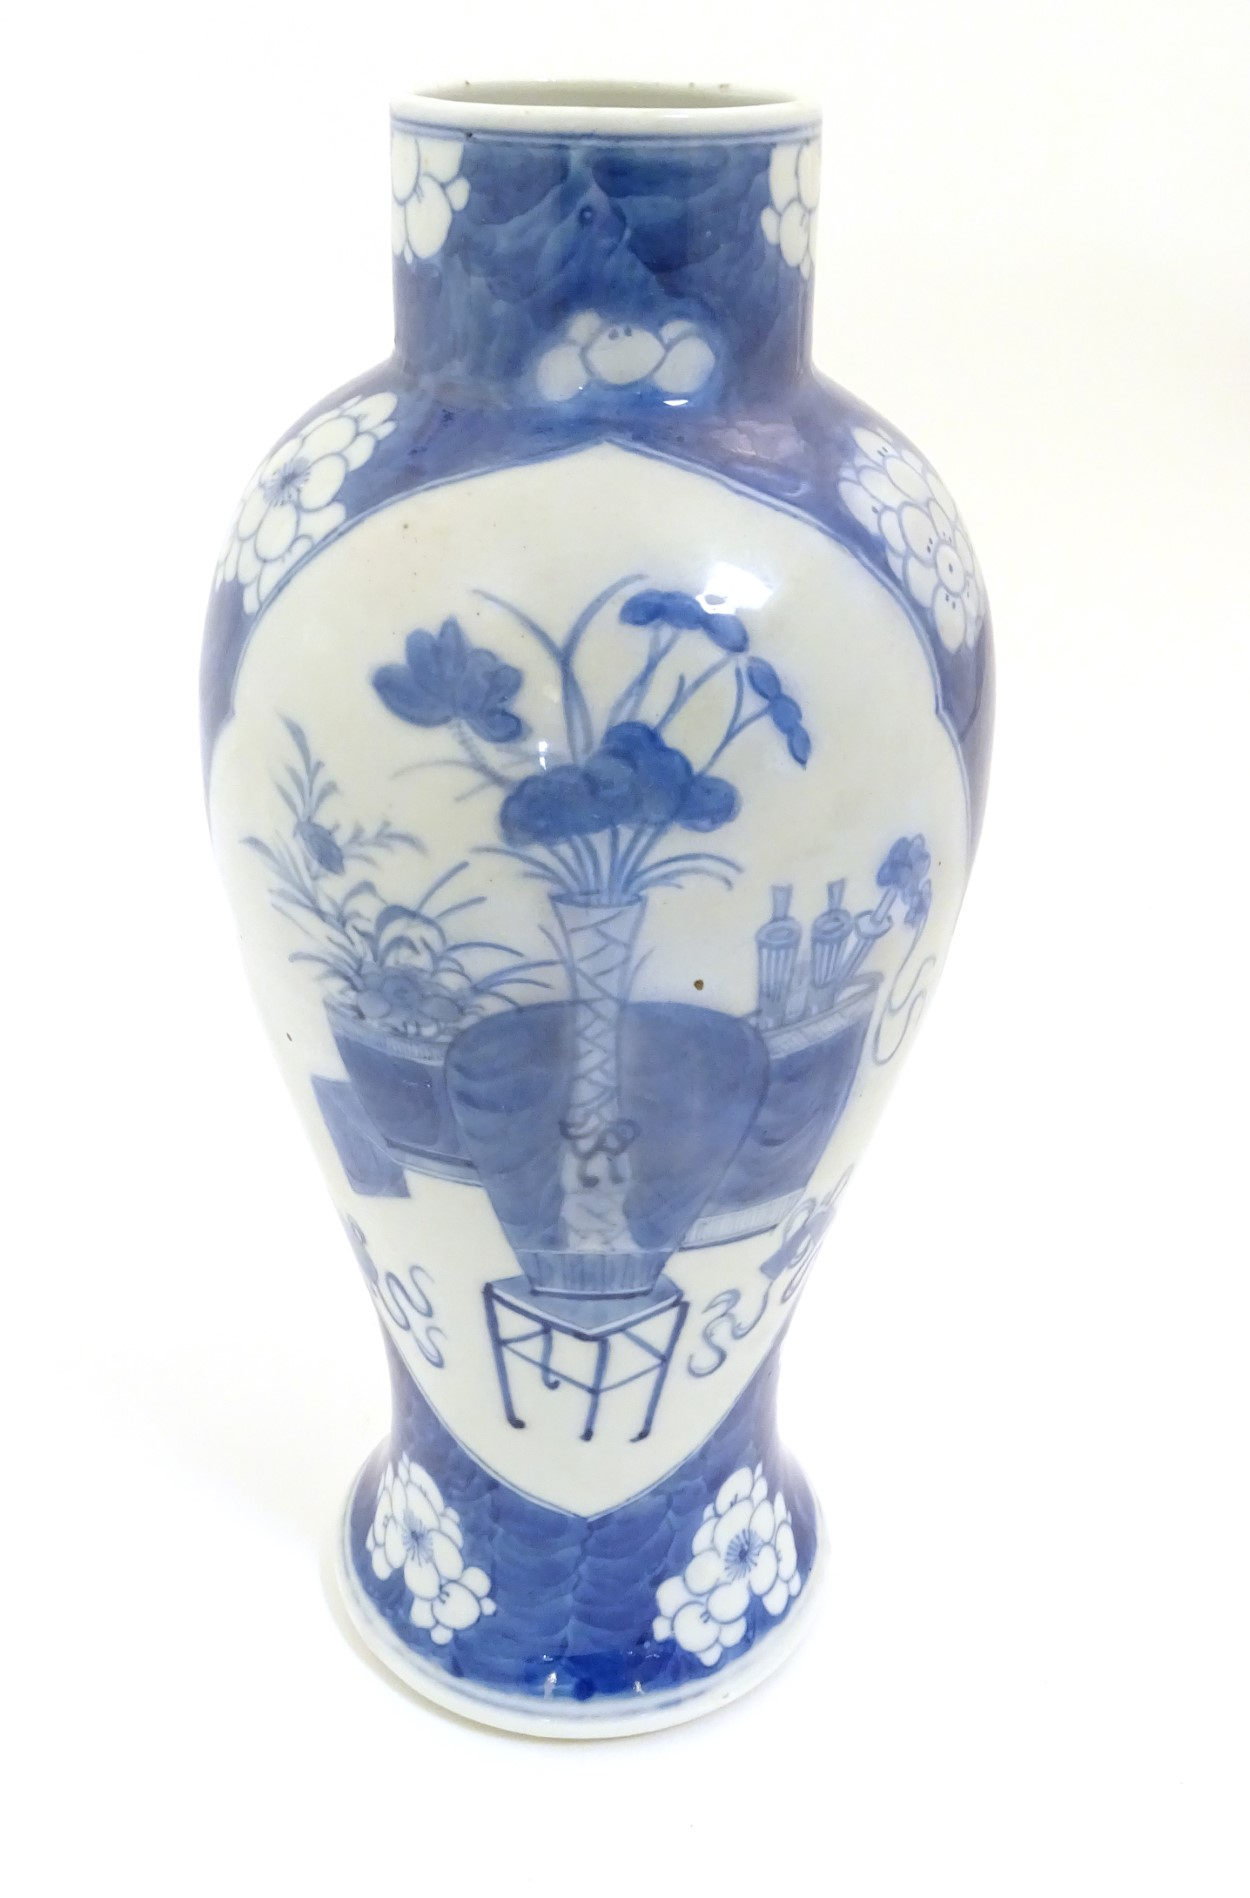 Lot 36 - A Chinese, blue and white baluster vase decorated with prunus flowers,